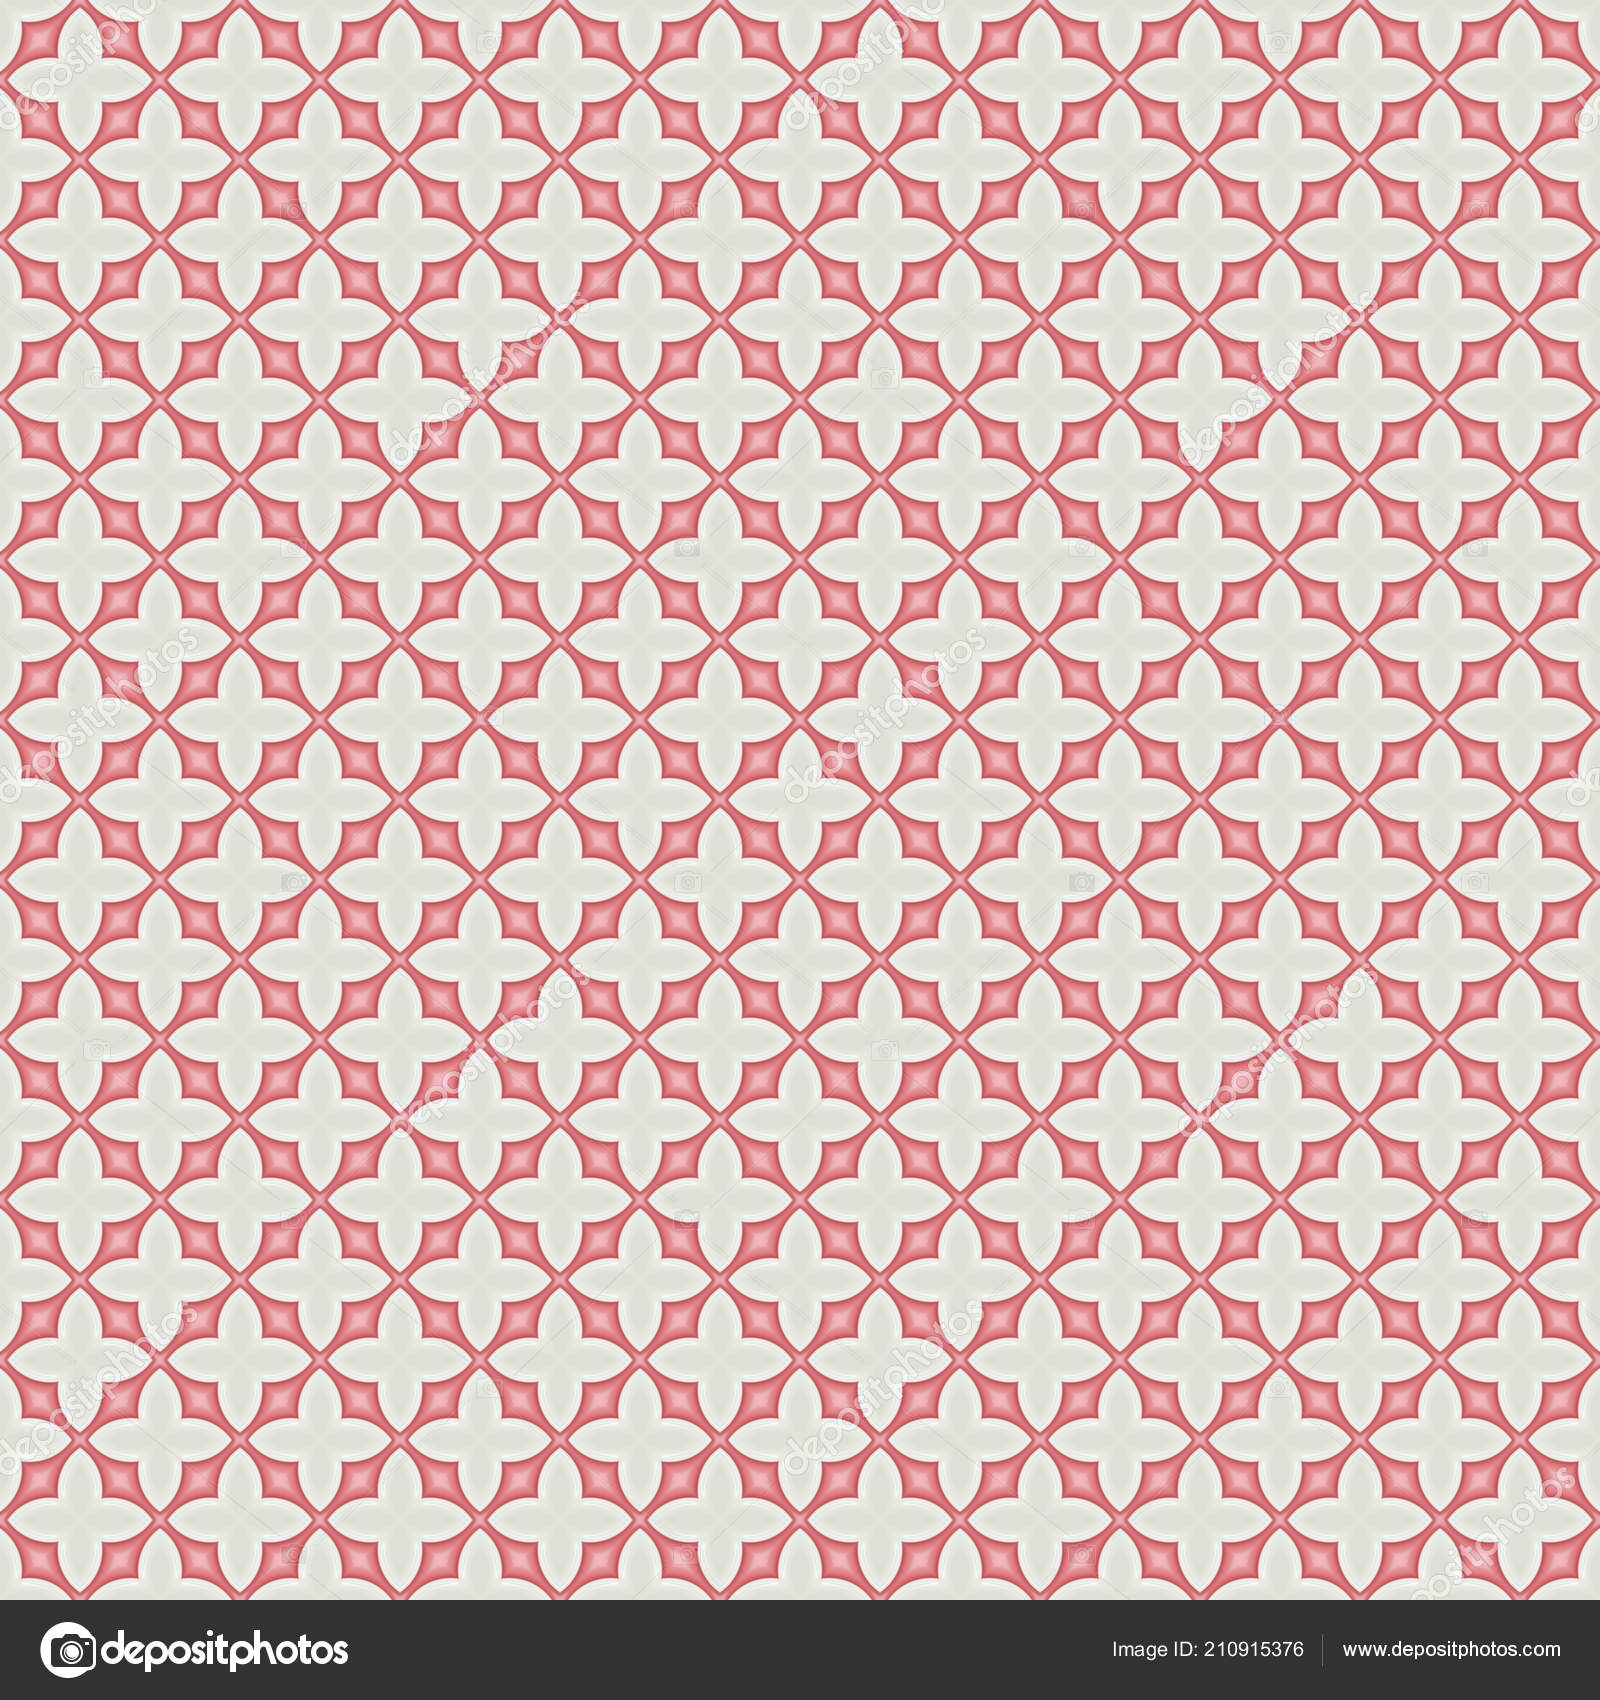 Abstract geometric pattern  Design for printing on fabric